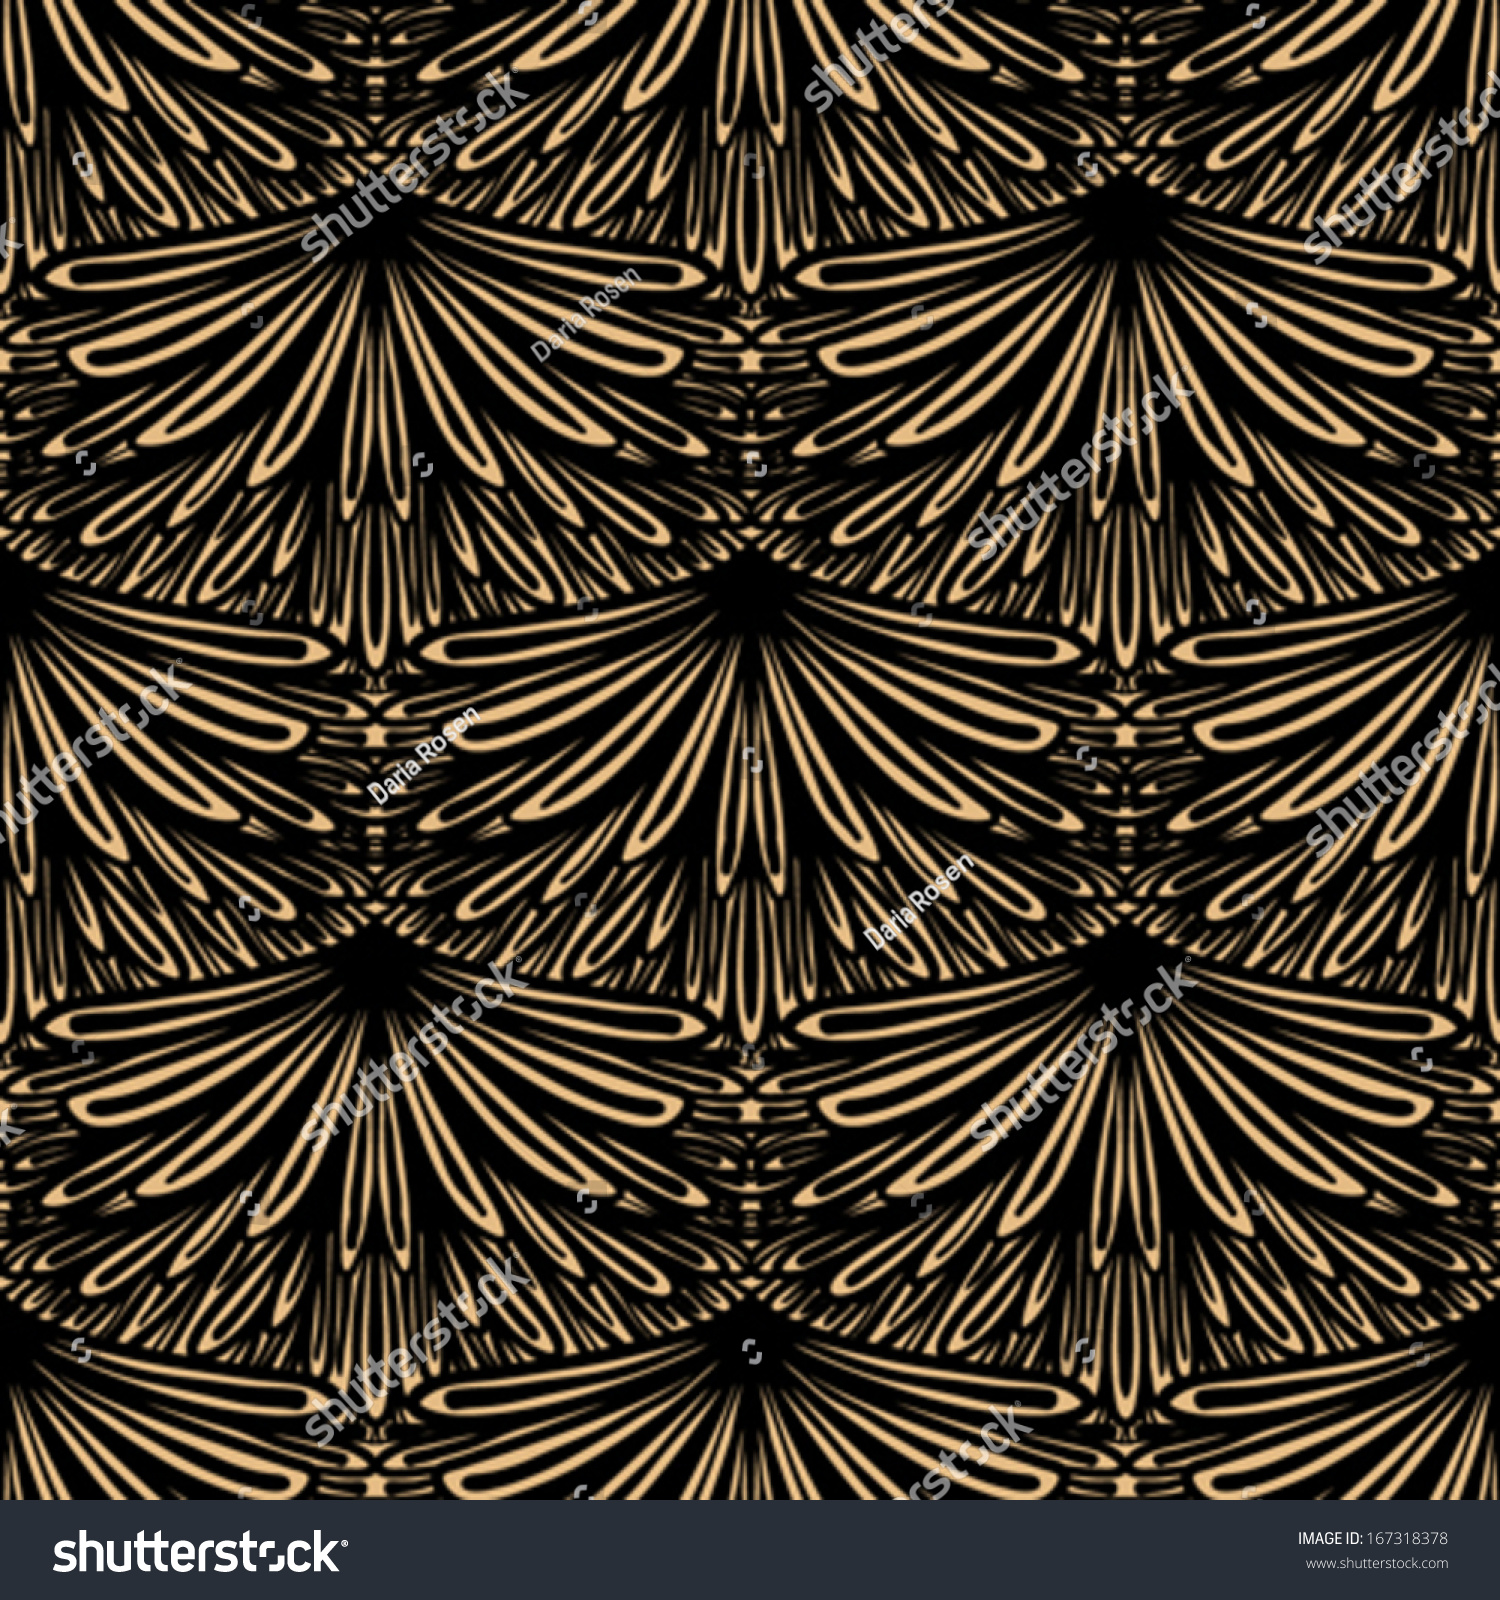 amazing Art Deco Geometric Wallpaper Part - 19: Art deco vector geometric pattern in brown color. Seamless texture for web,  print, wallpaper, Christmas gift wrapping, home decor, winter fashion, ...